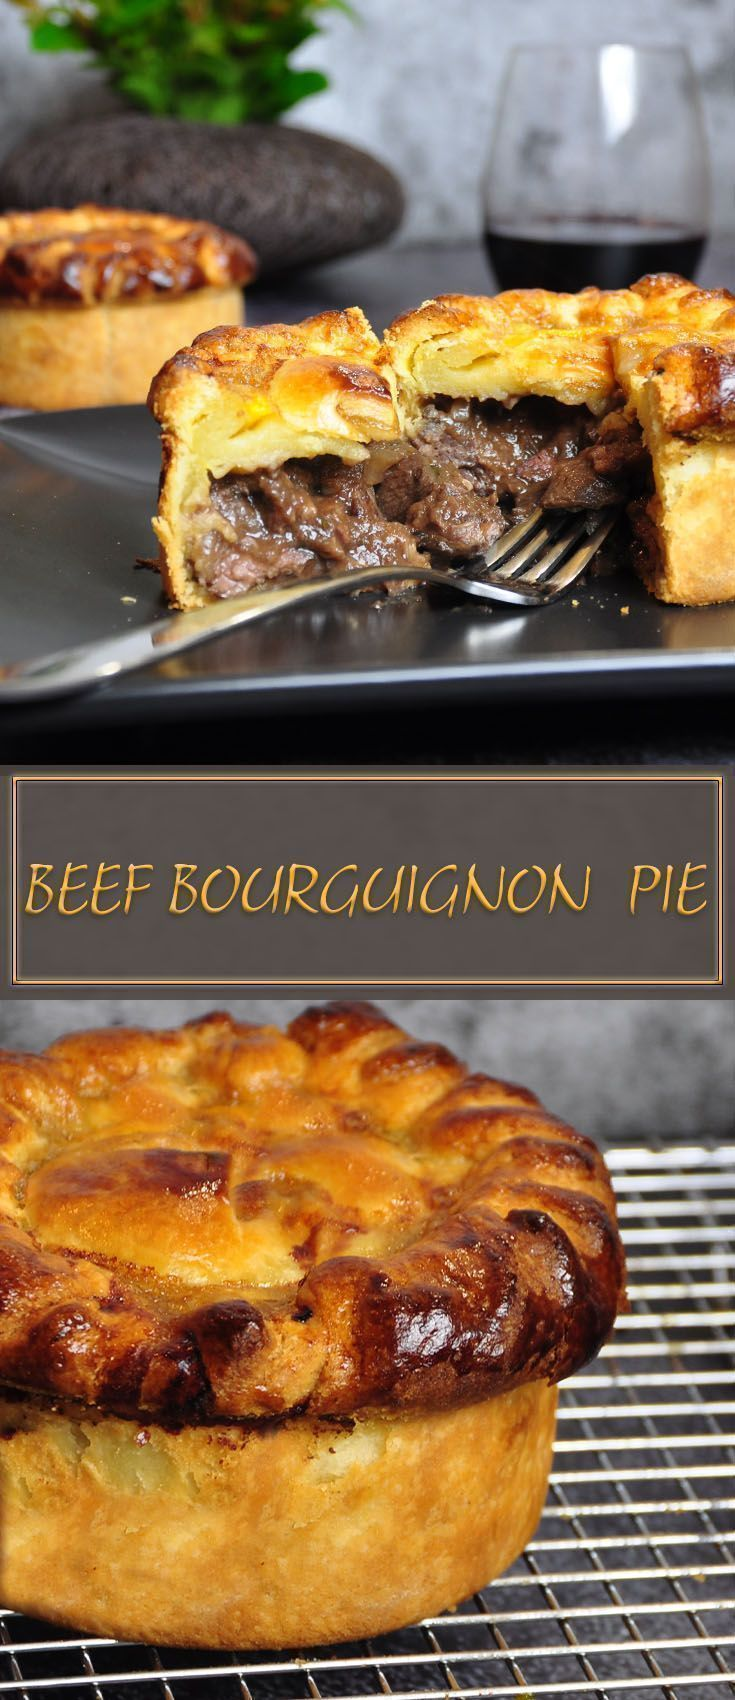 Beef Bourguignon Pie With No Fail 2 Minute Flaky Pastry Recipe Beef Bourguignon Savoury Baking Sour Cream Pastry